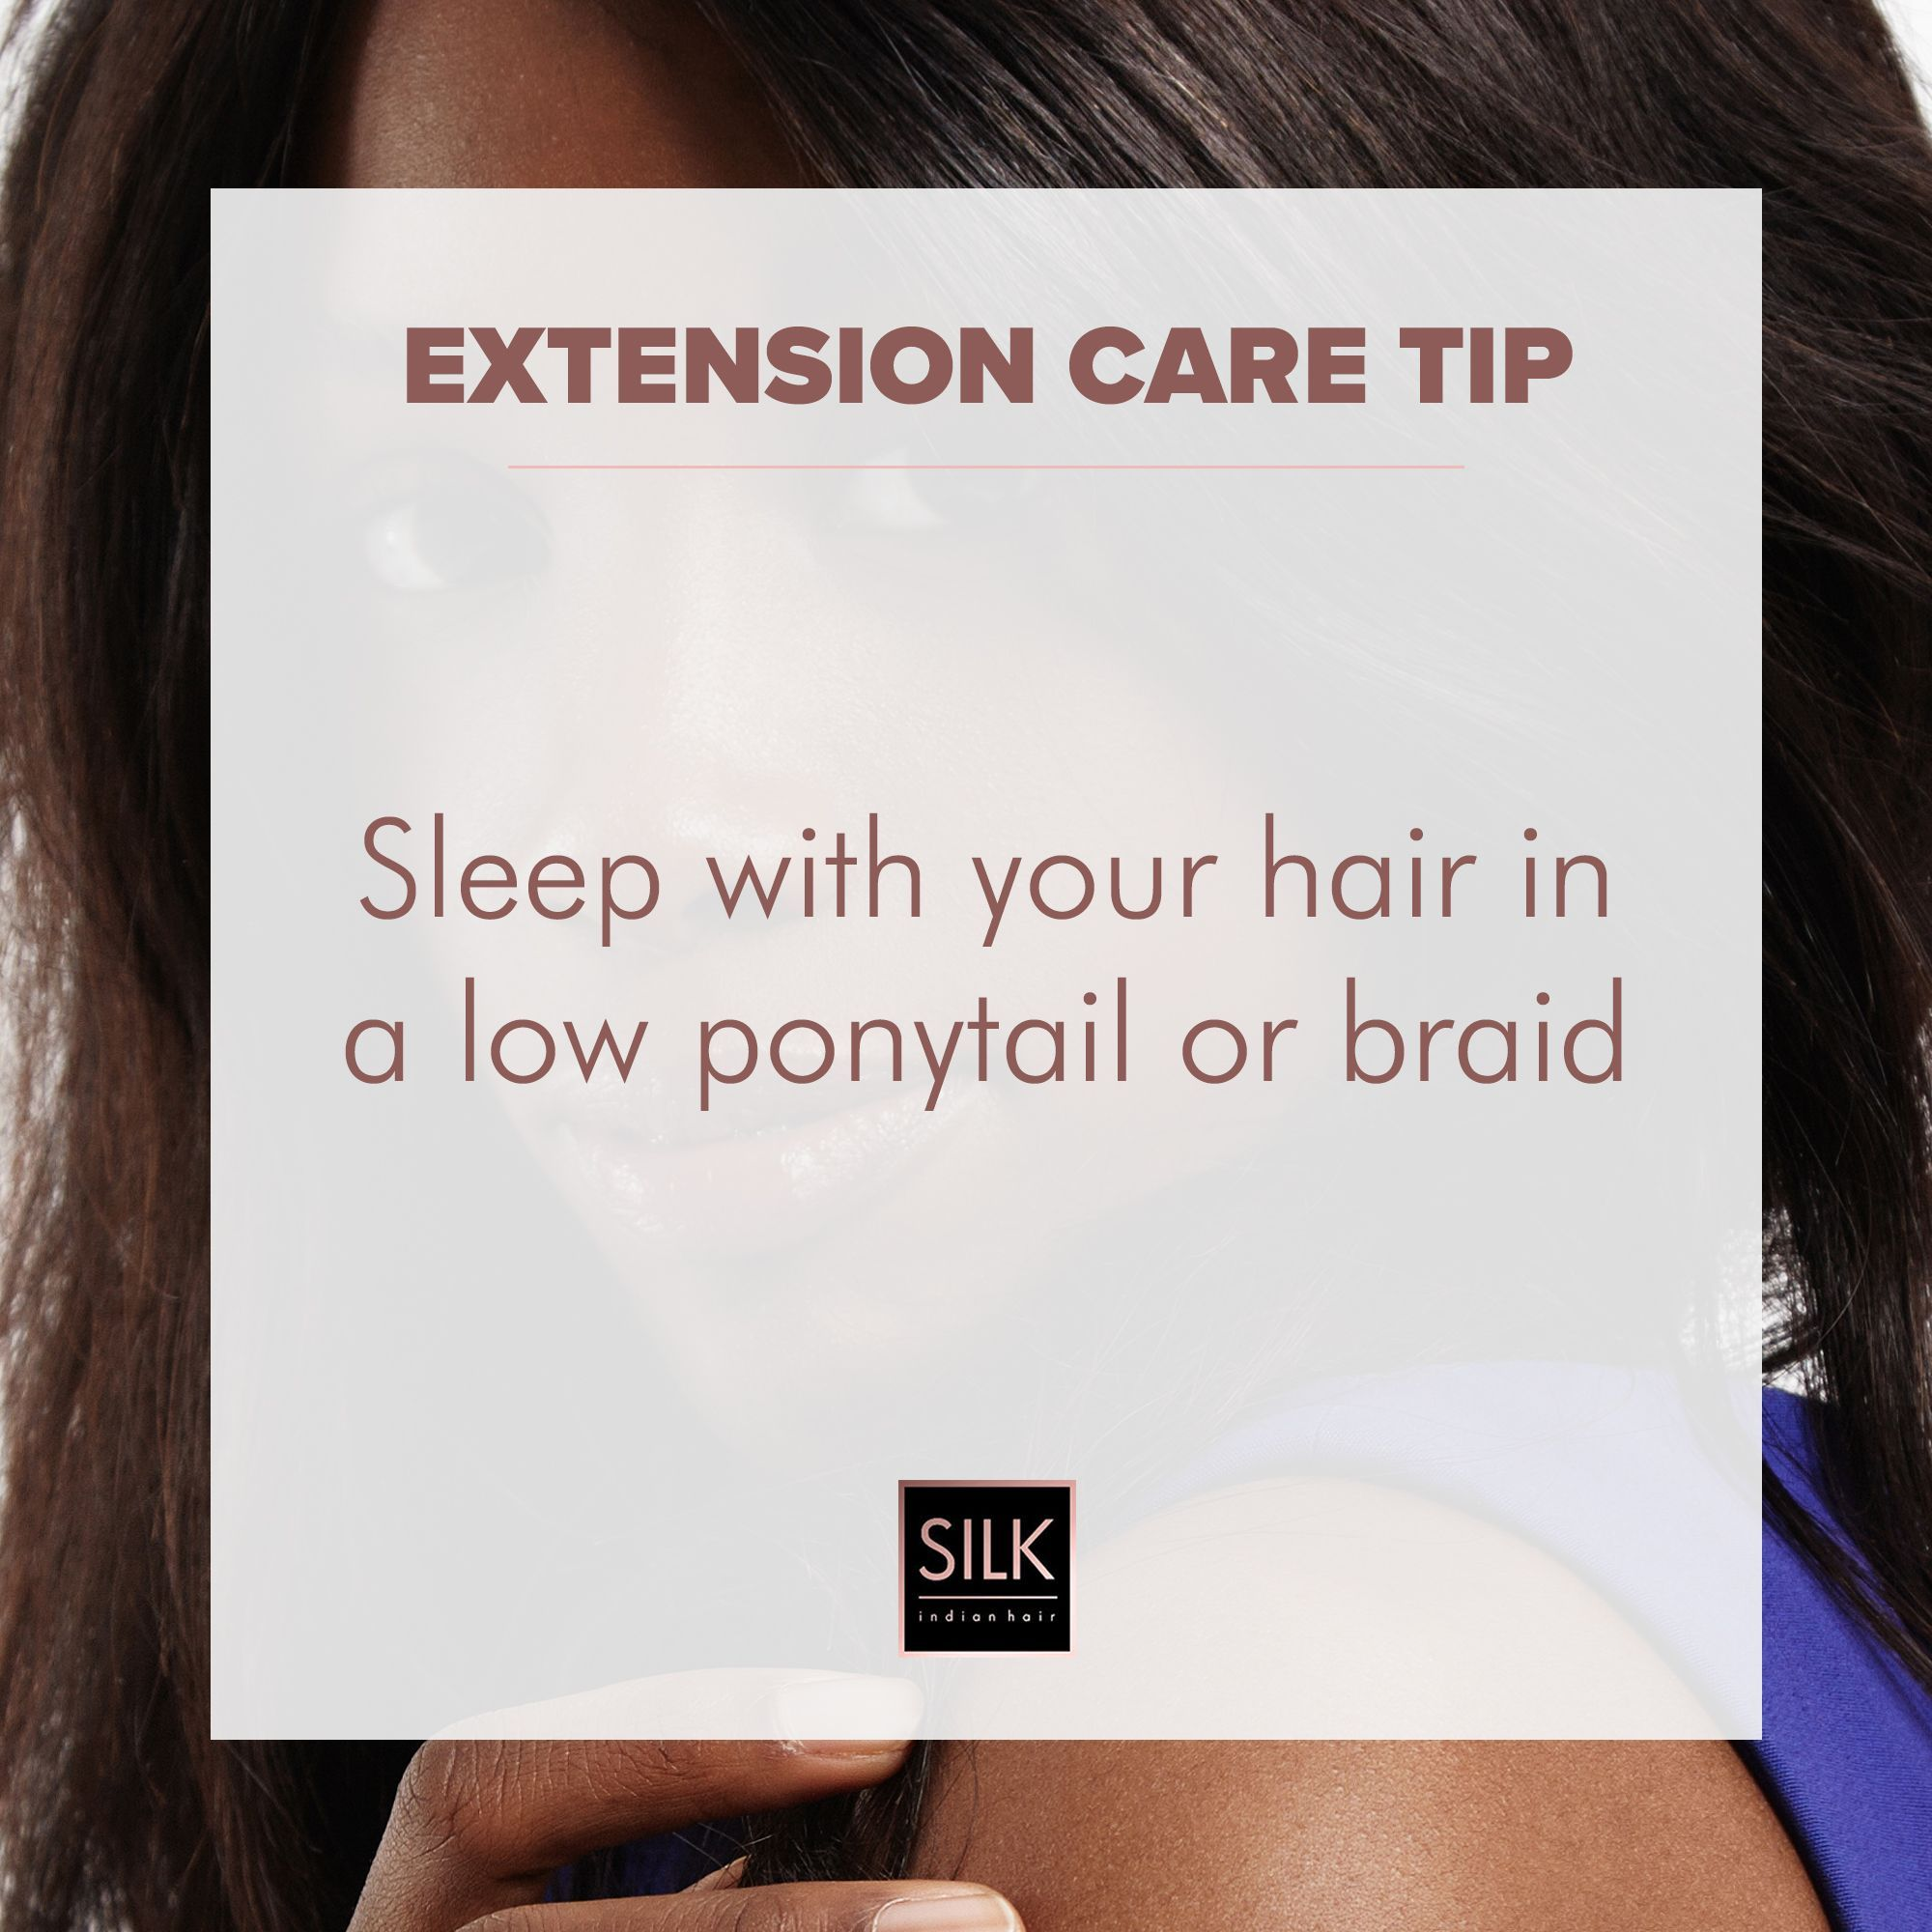 Sleeping In A Ponytail Or Braid Will Ensure The Extensions Do Not